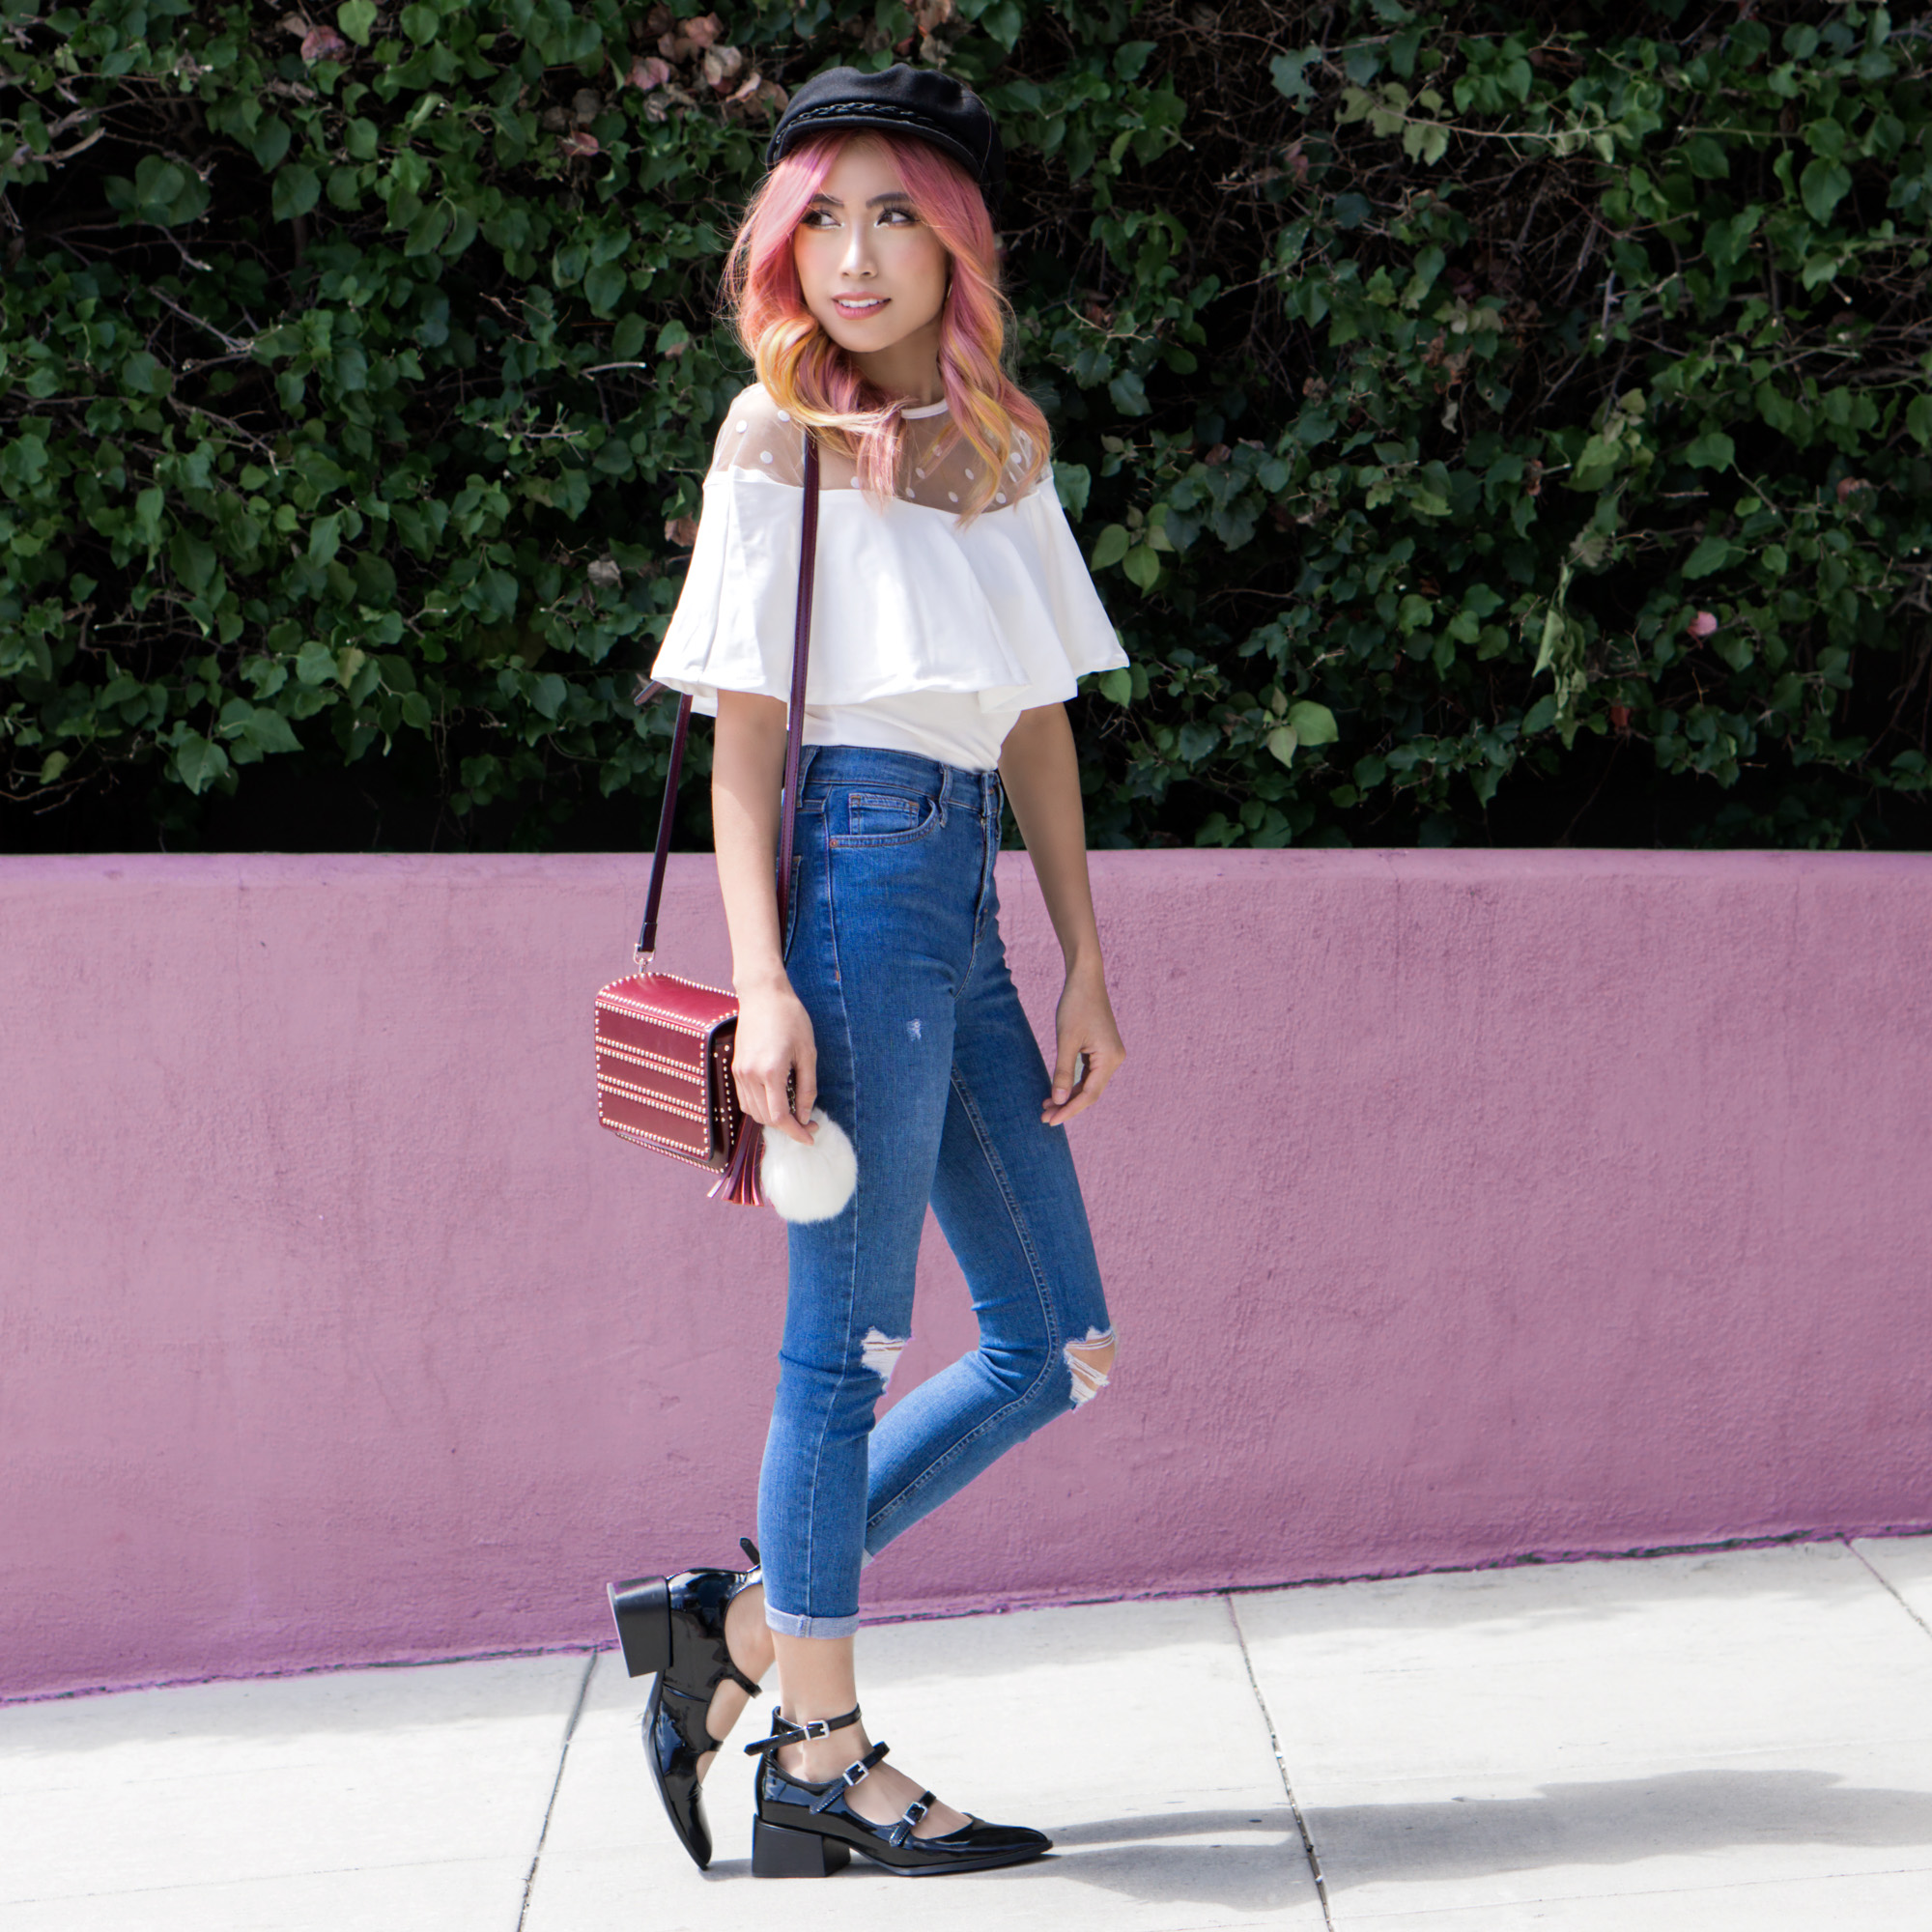 shein-san-diego-fashion-lookbook-02.jpg